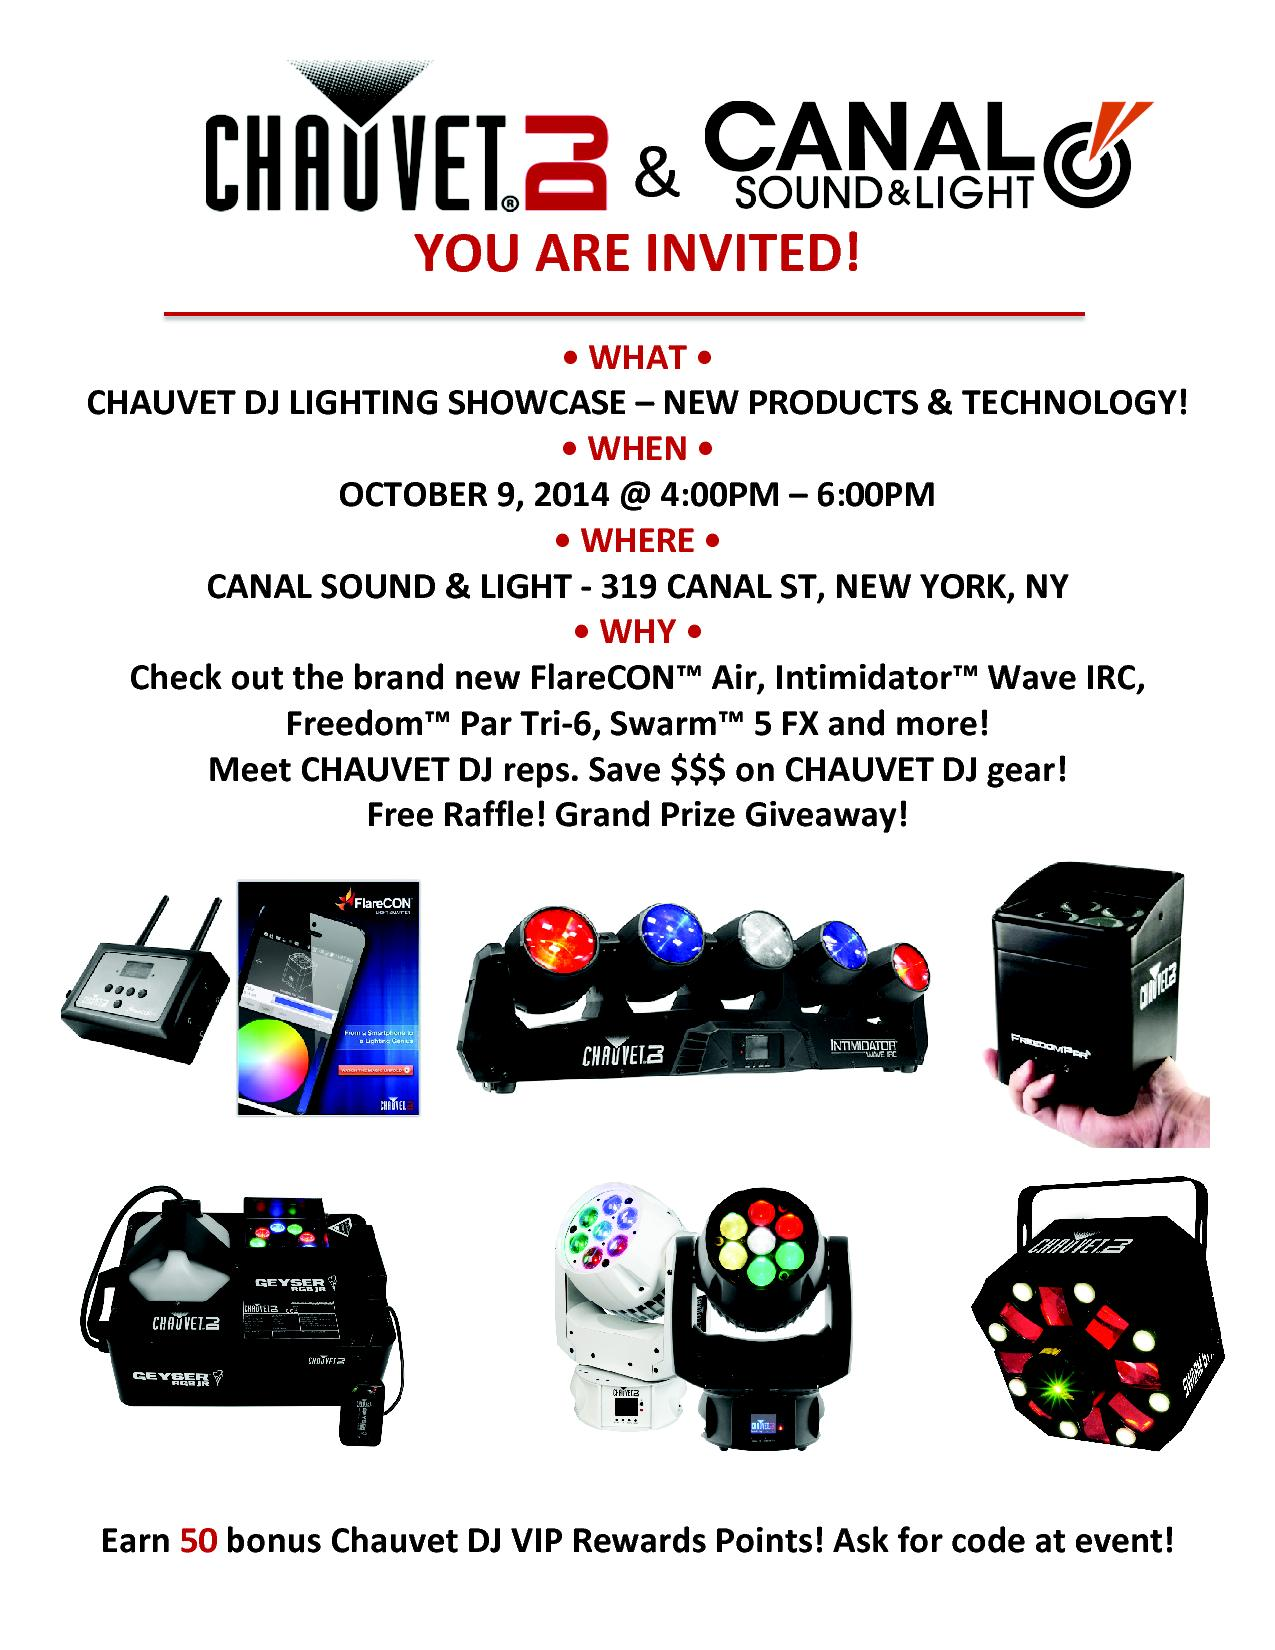 Chauvet DJ LIGHTING Showcase - New Products & Technology!!